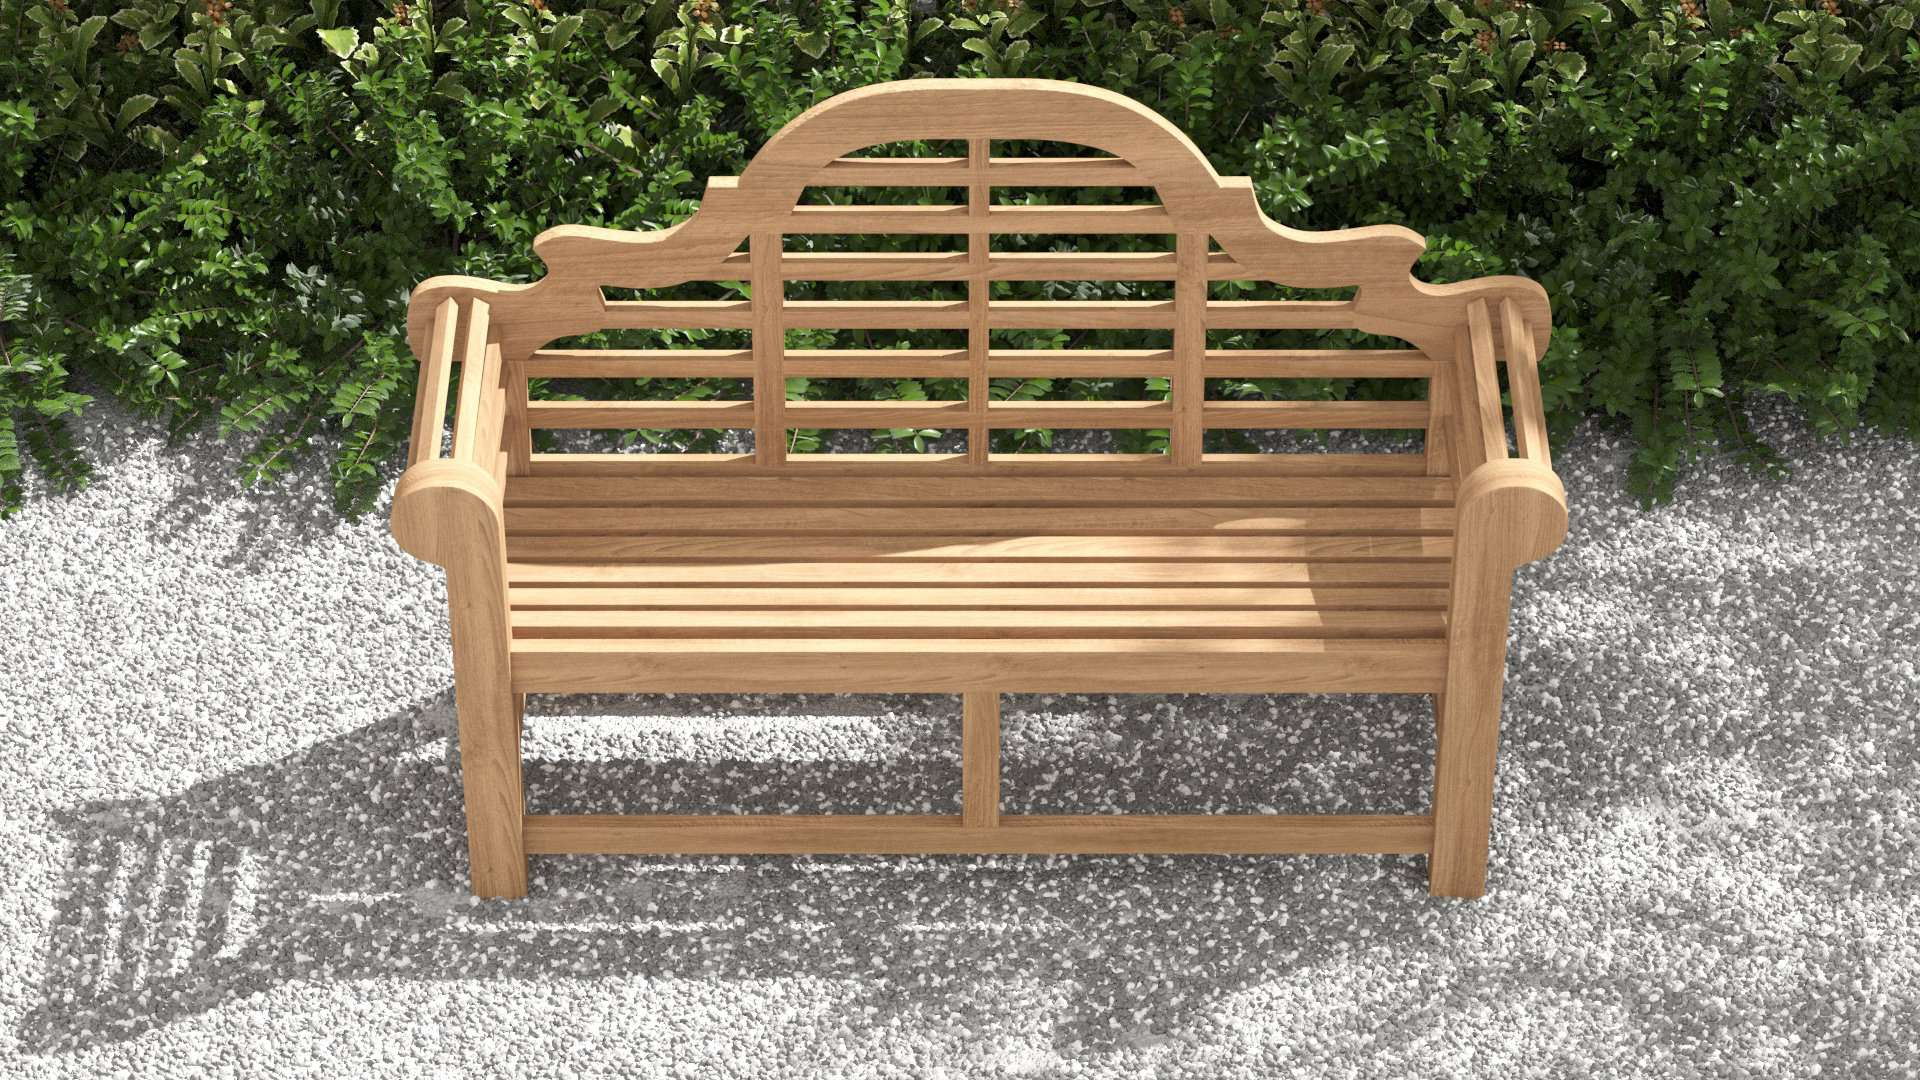 Lutyens Teak Bench (130cm) 2 Seater  - Chic Teak® | Luxury Teak Furniture